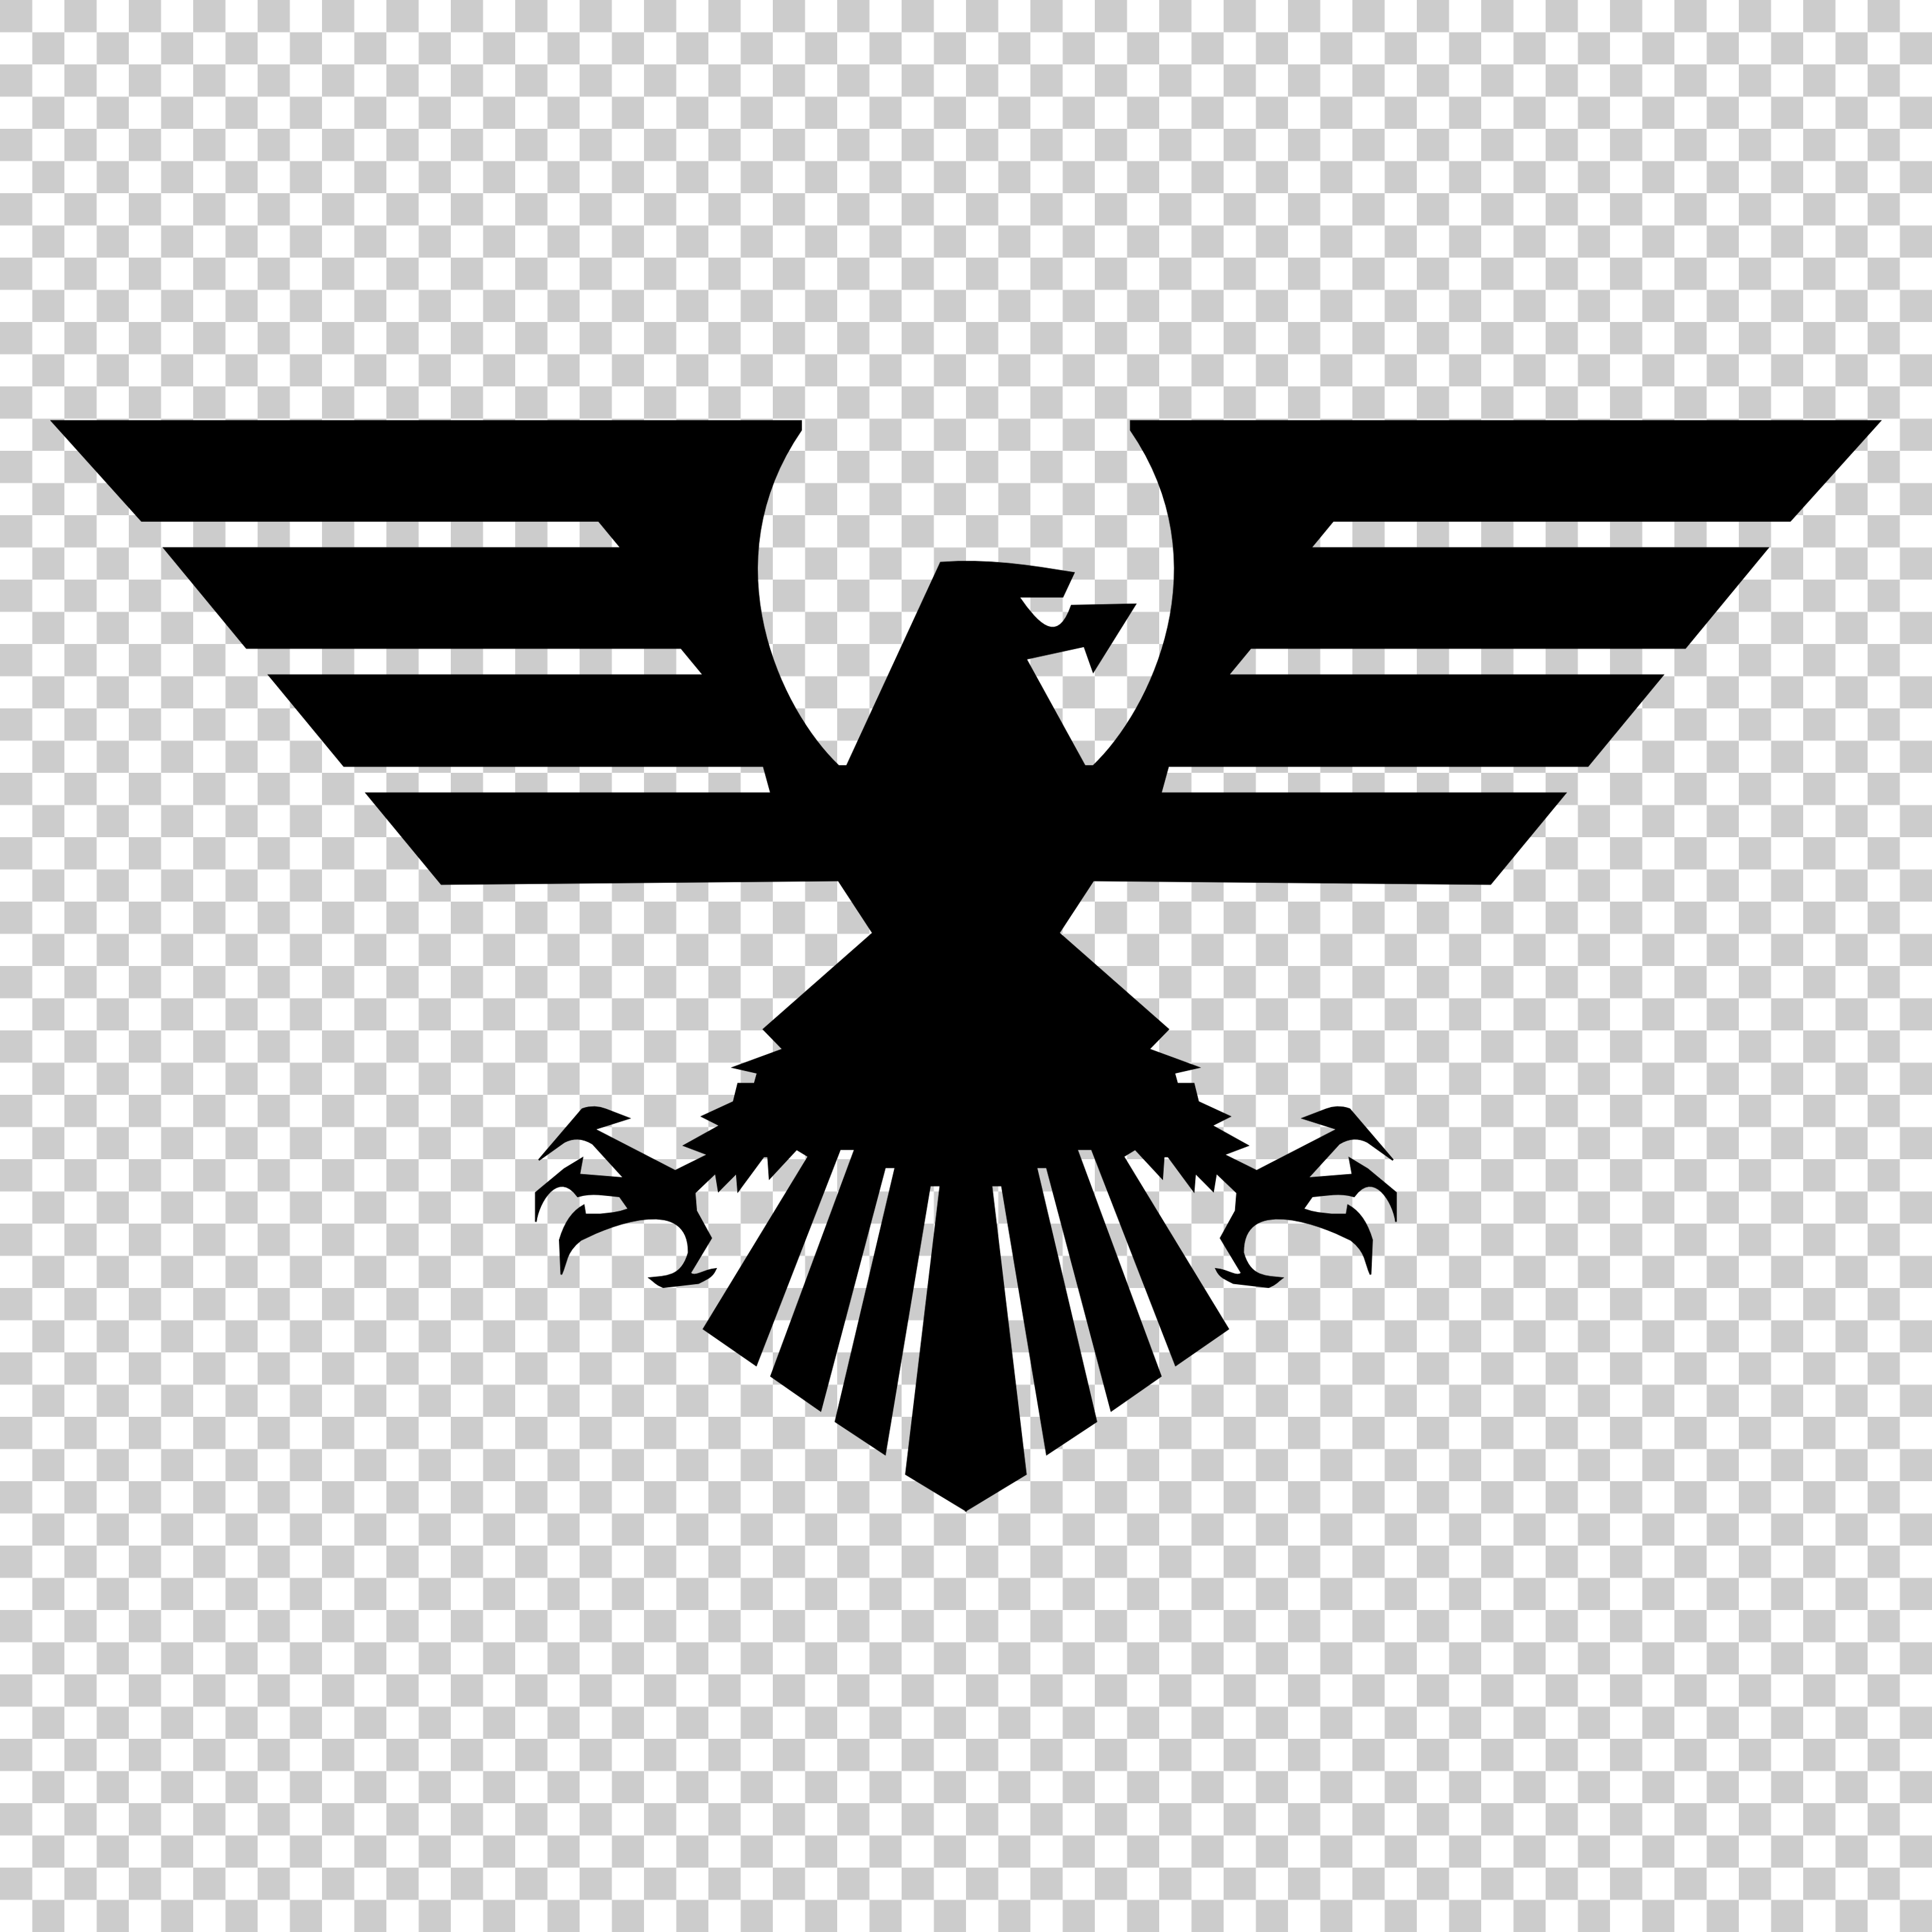 Eagle Hawk Bird Png Image With Transparent Background Love Background Images Png Images Stock Images Free